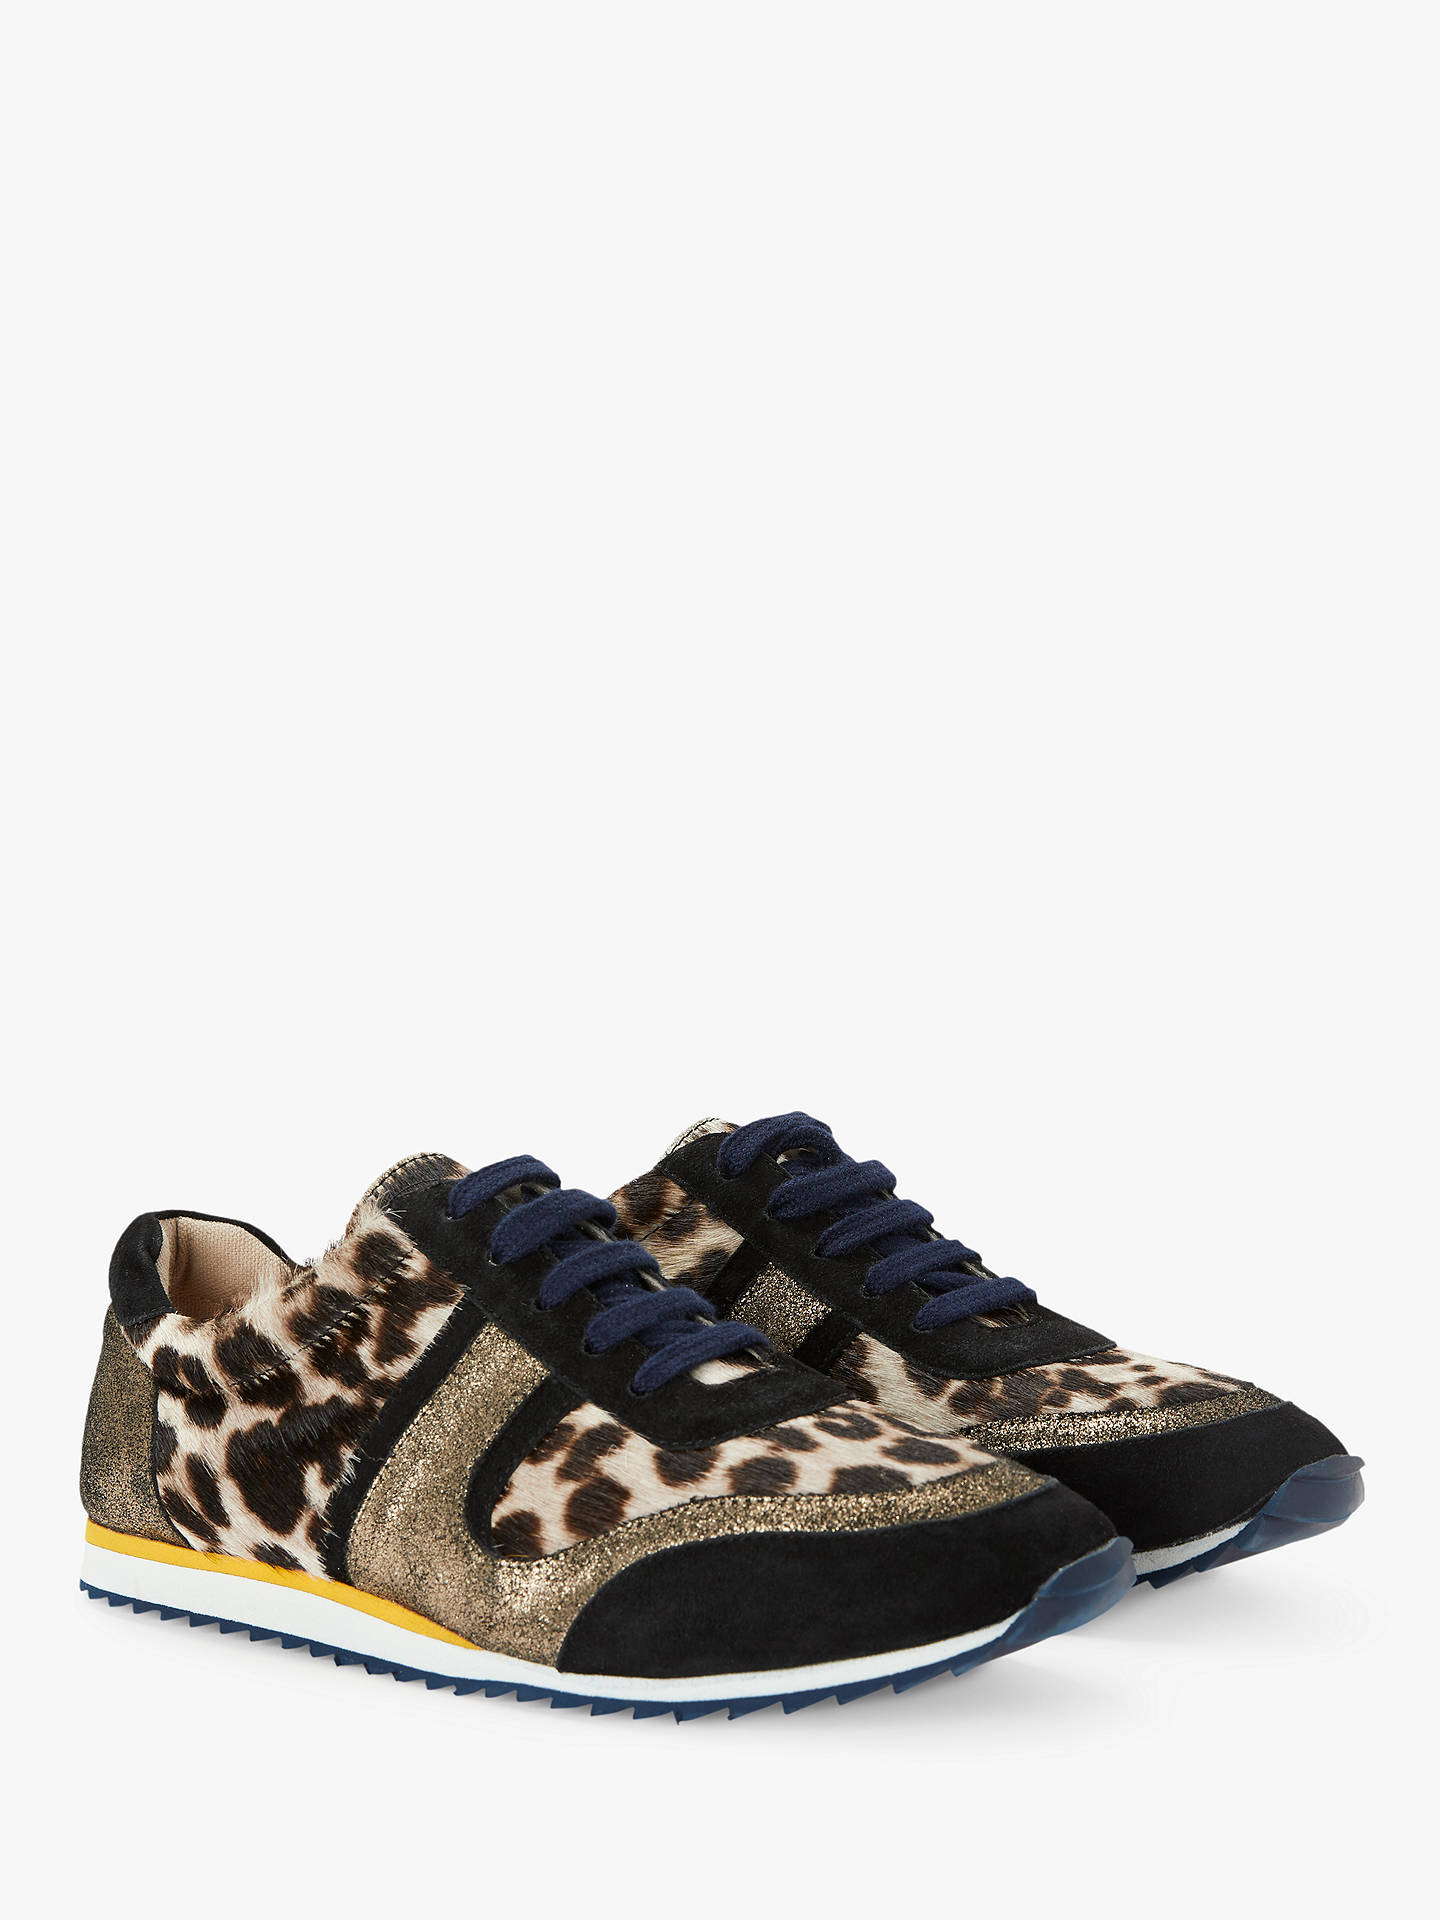 Buy Boden Hotchpotch Leopard Trainers, Snow Leopard Cowhide, 4 Online at johnlewis.com